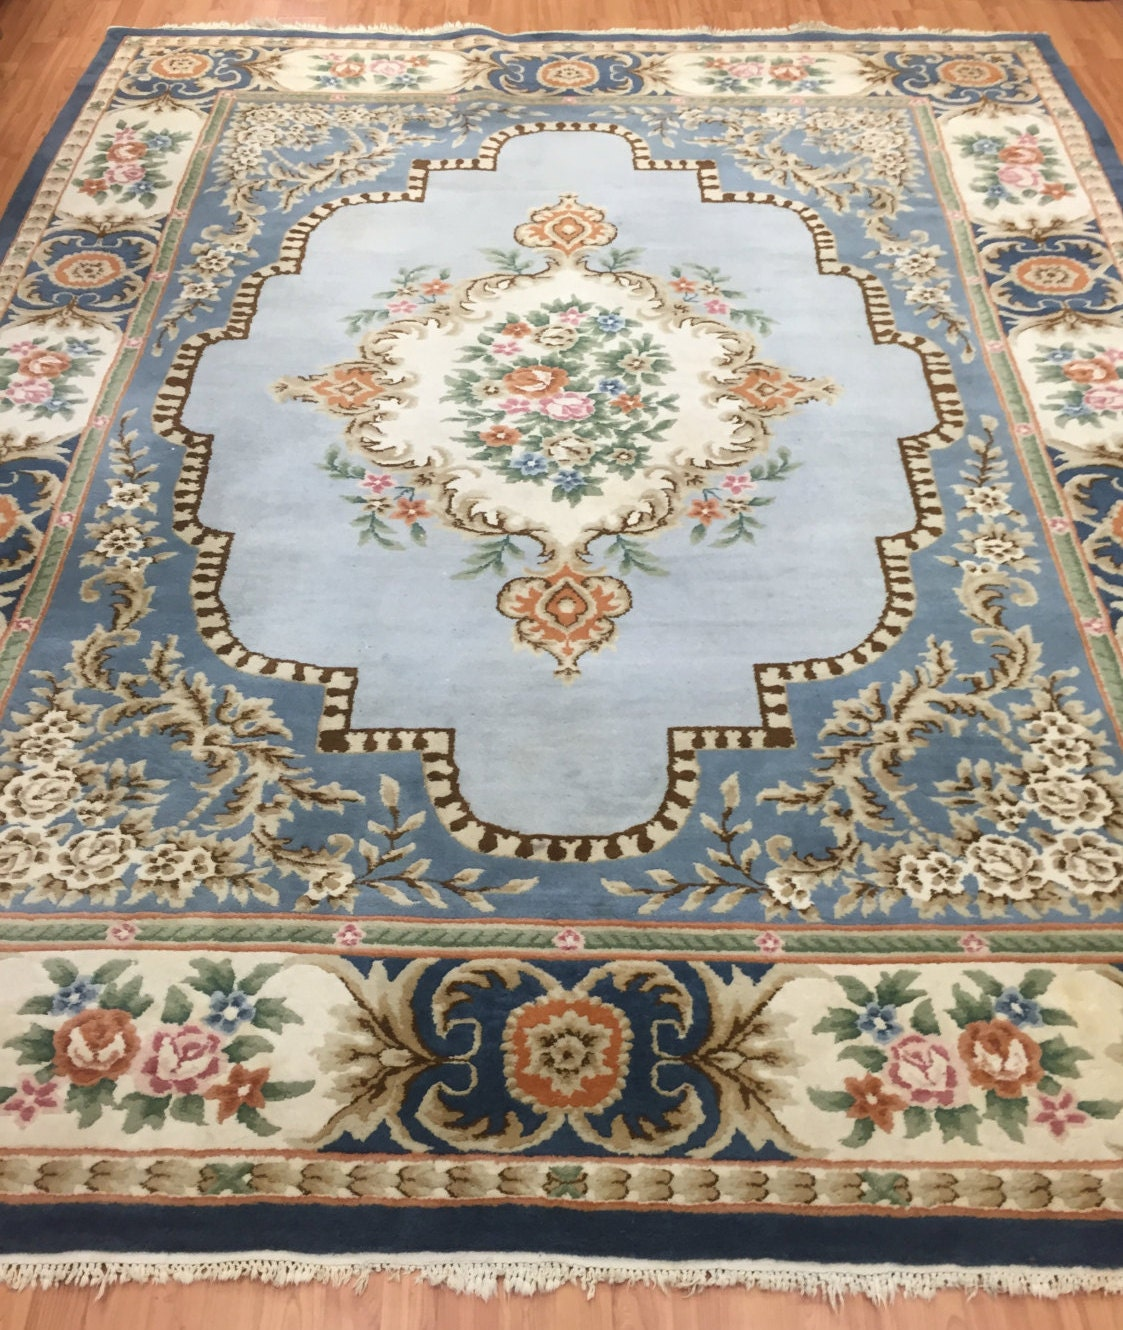 Oriental Rugs Out Of Style: 8' X 10' Chinese Aubusson Oriental Rug Full Pile